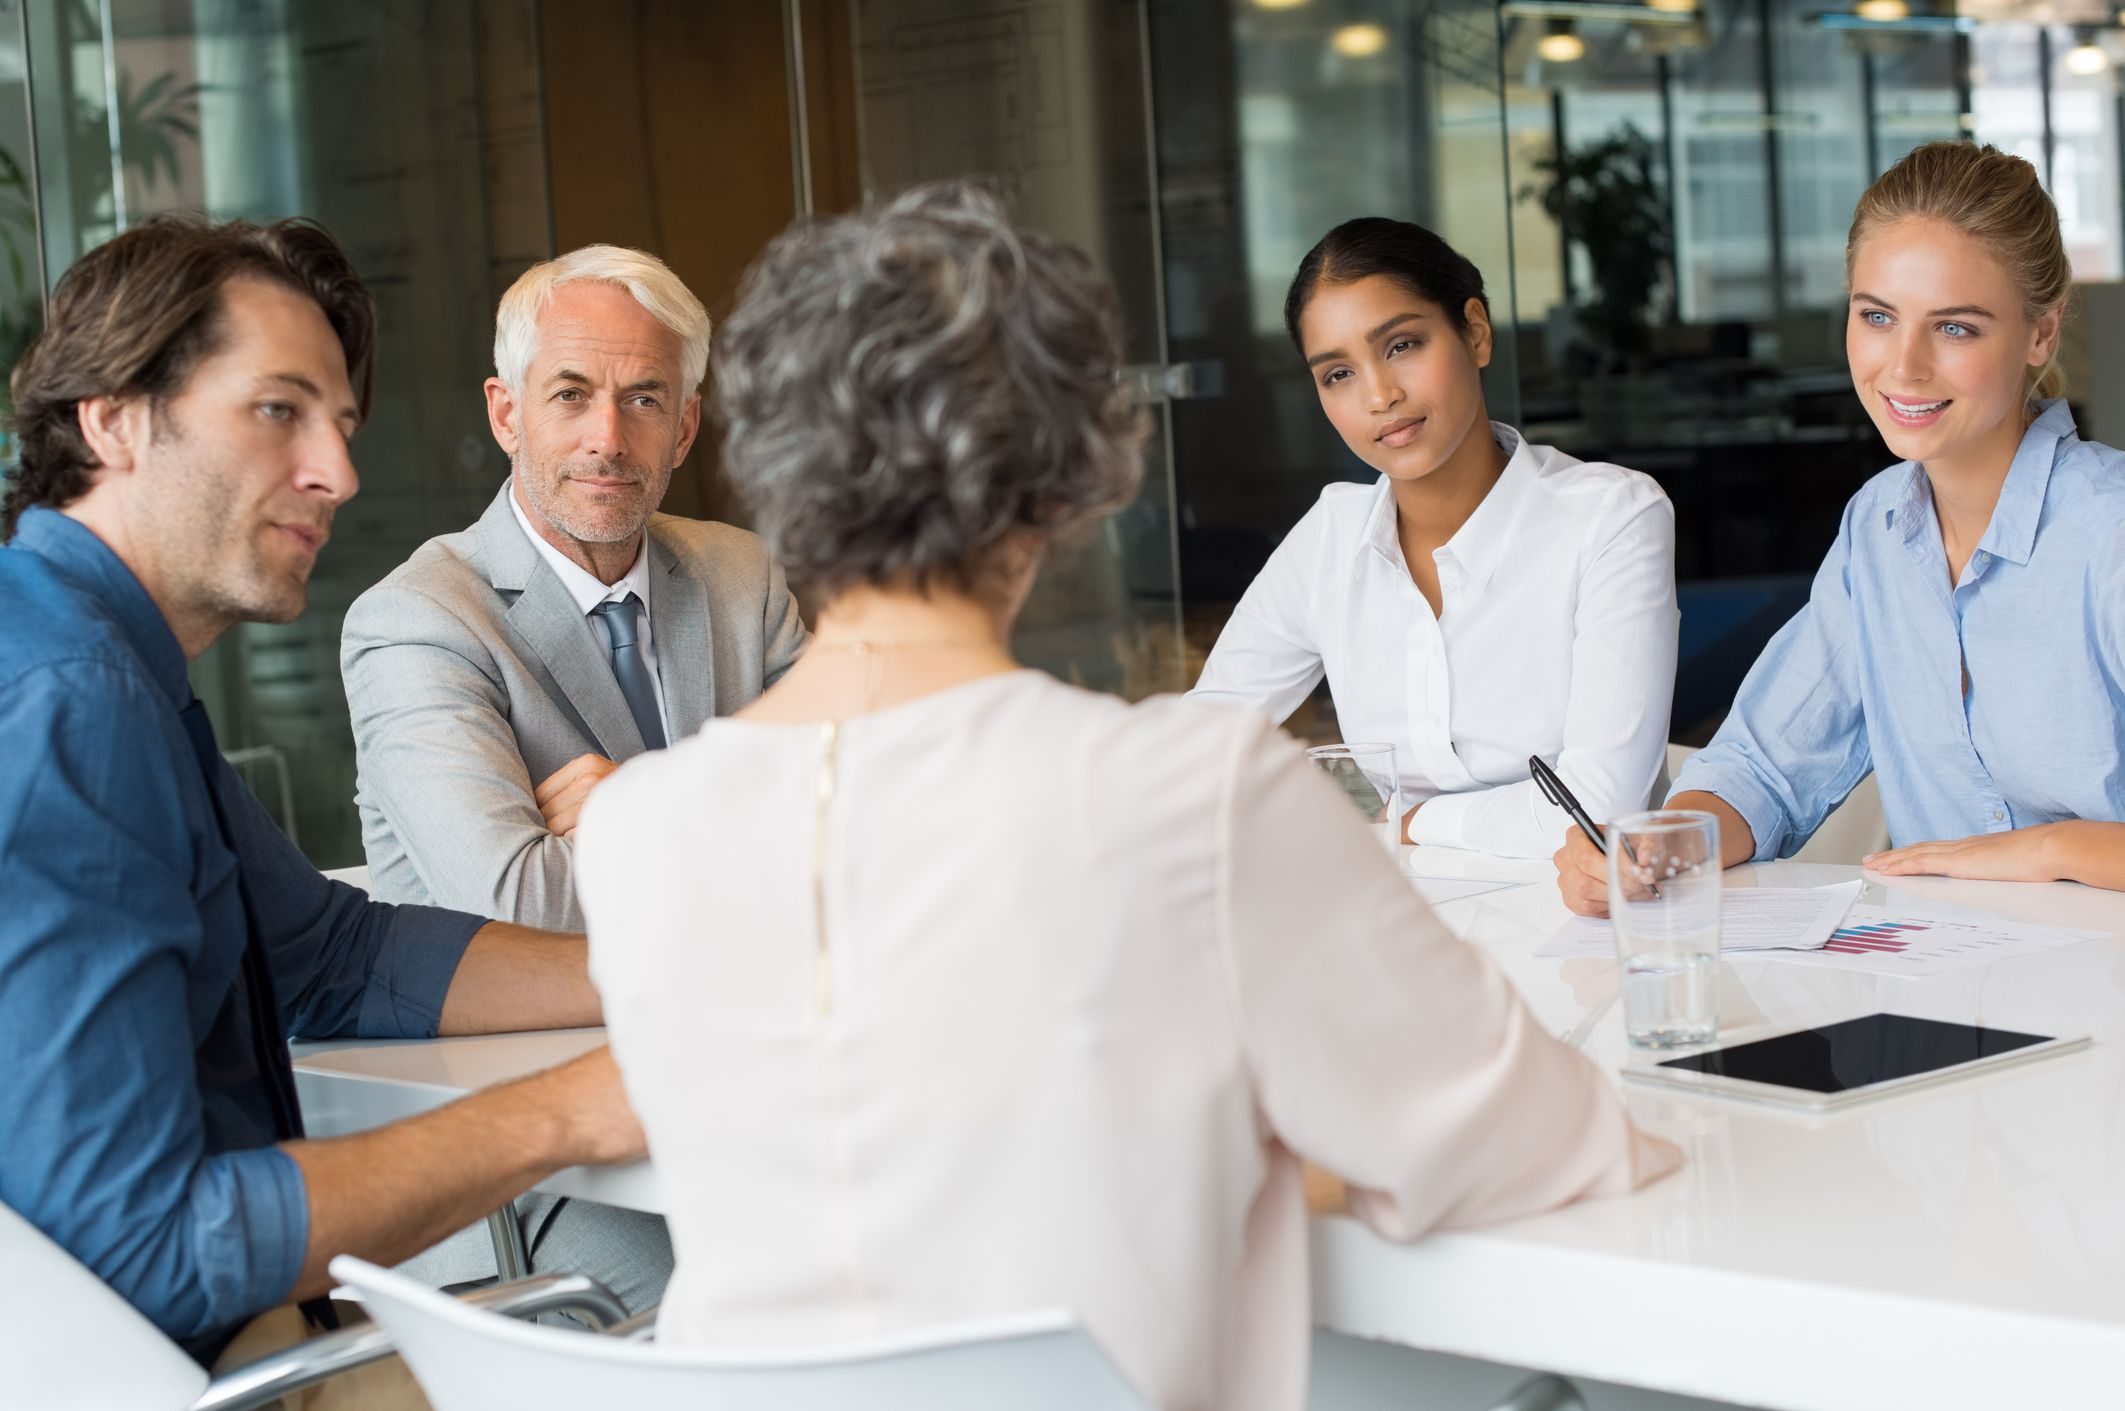 How to Develop an Effective Meeting Agenda